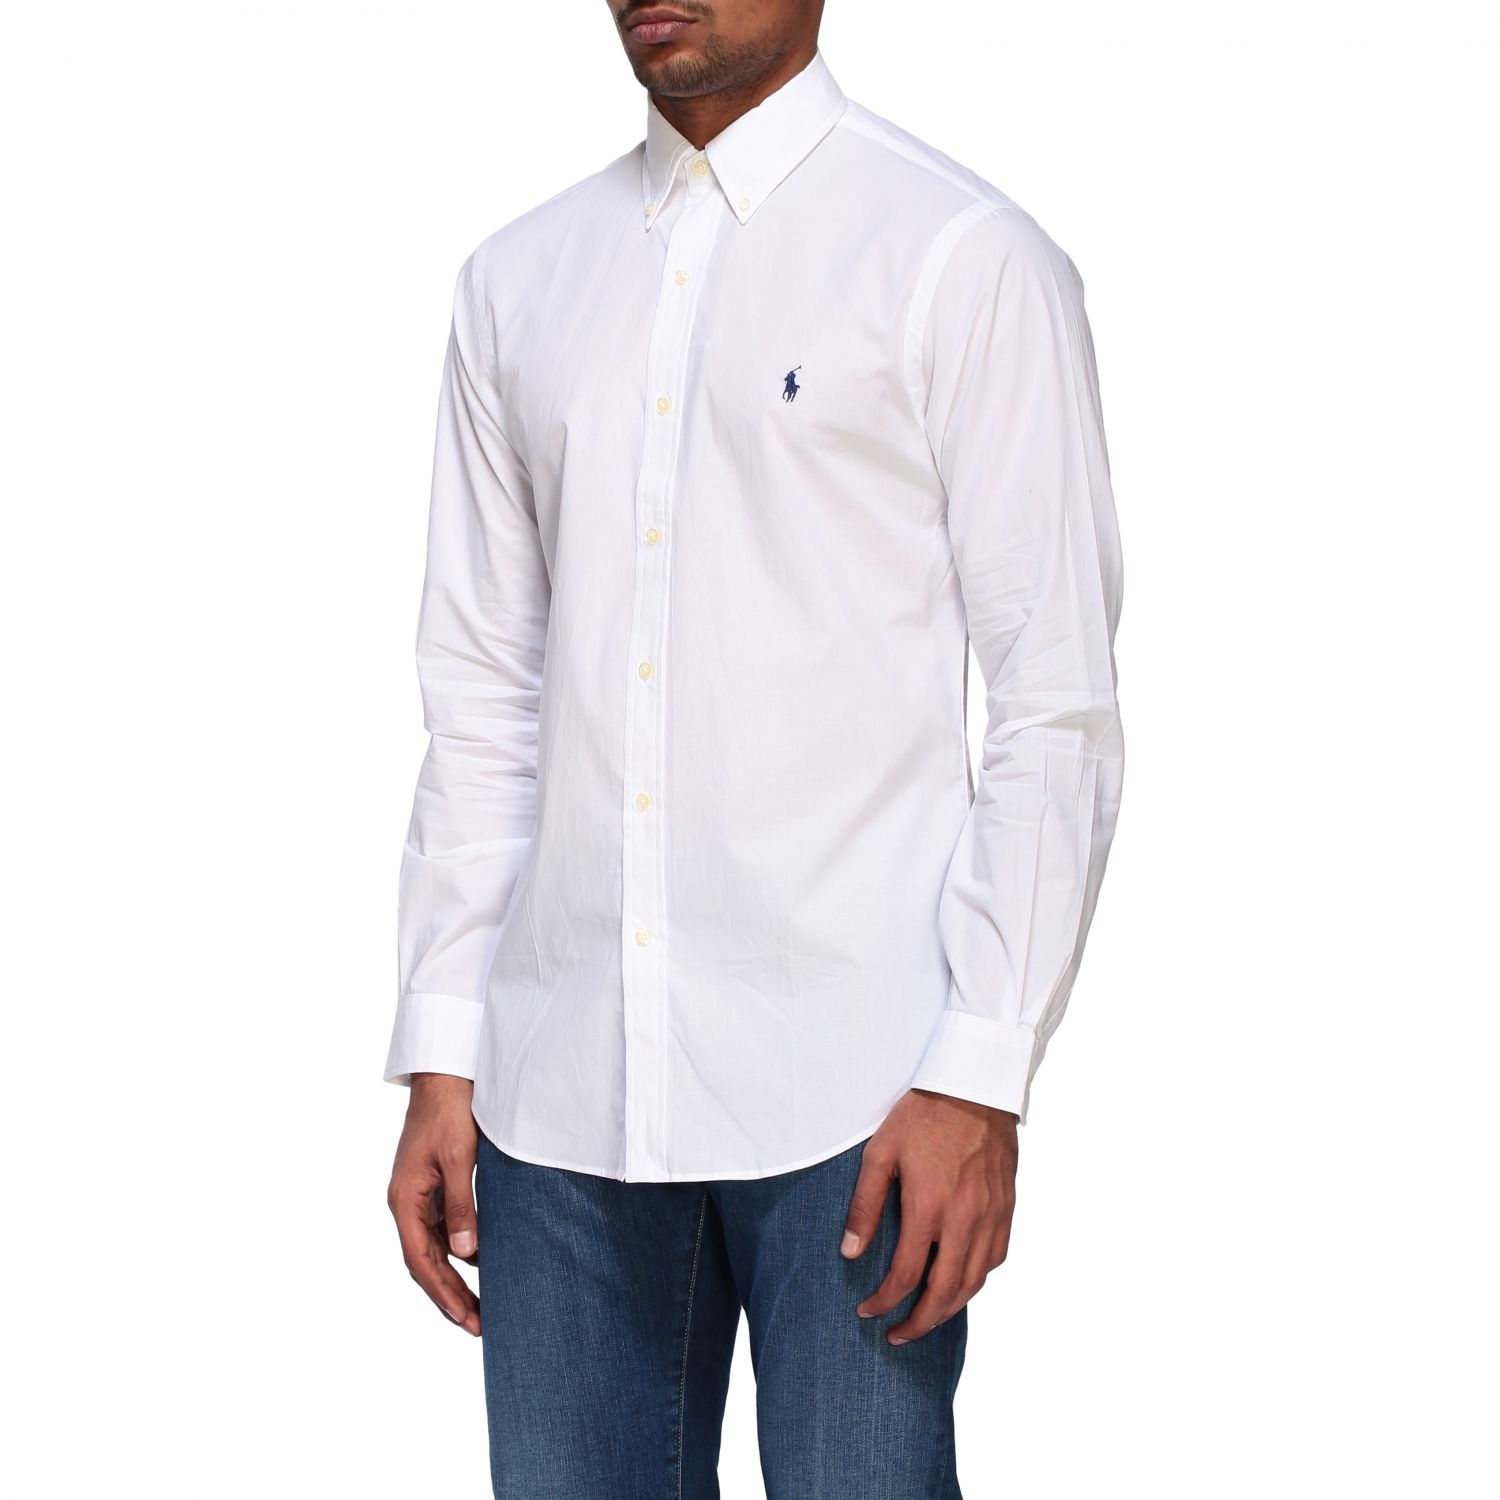 Camicia Polo Ralph Lauren in popeline con collo button down bianco 4